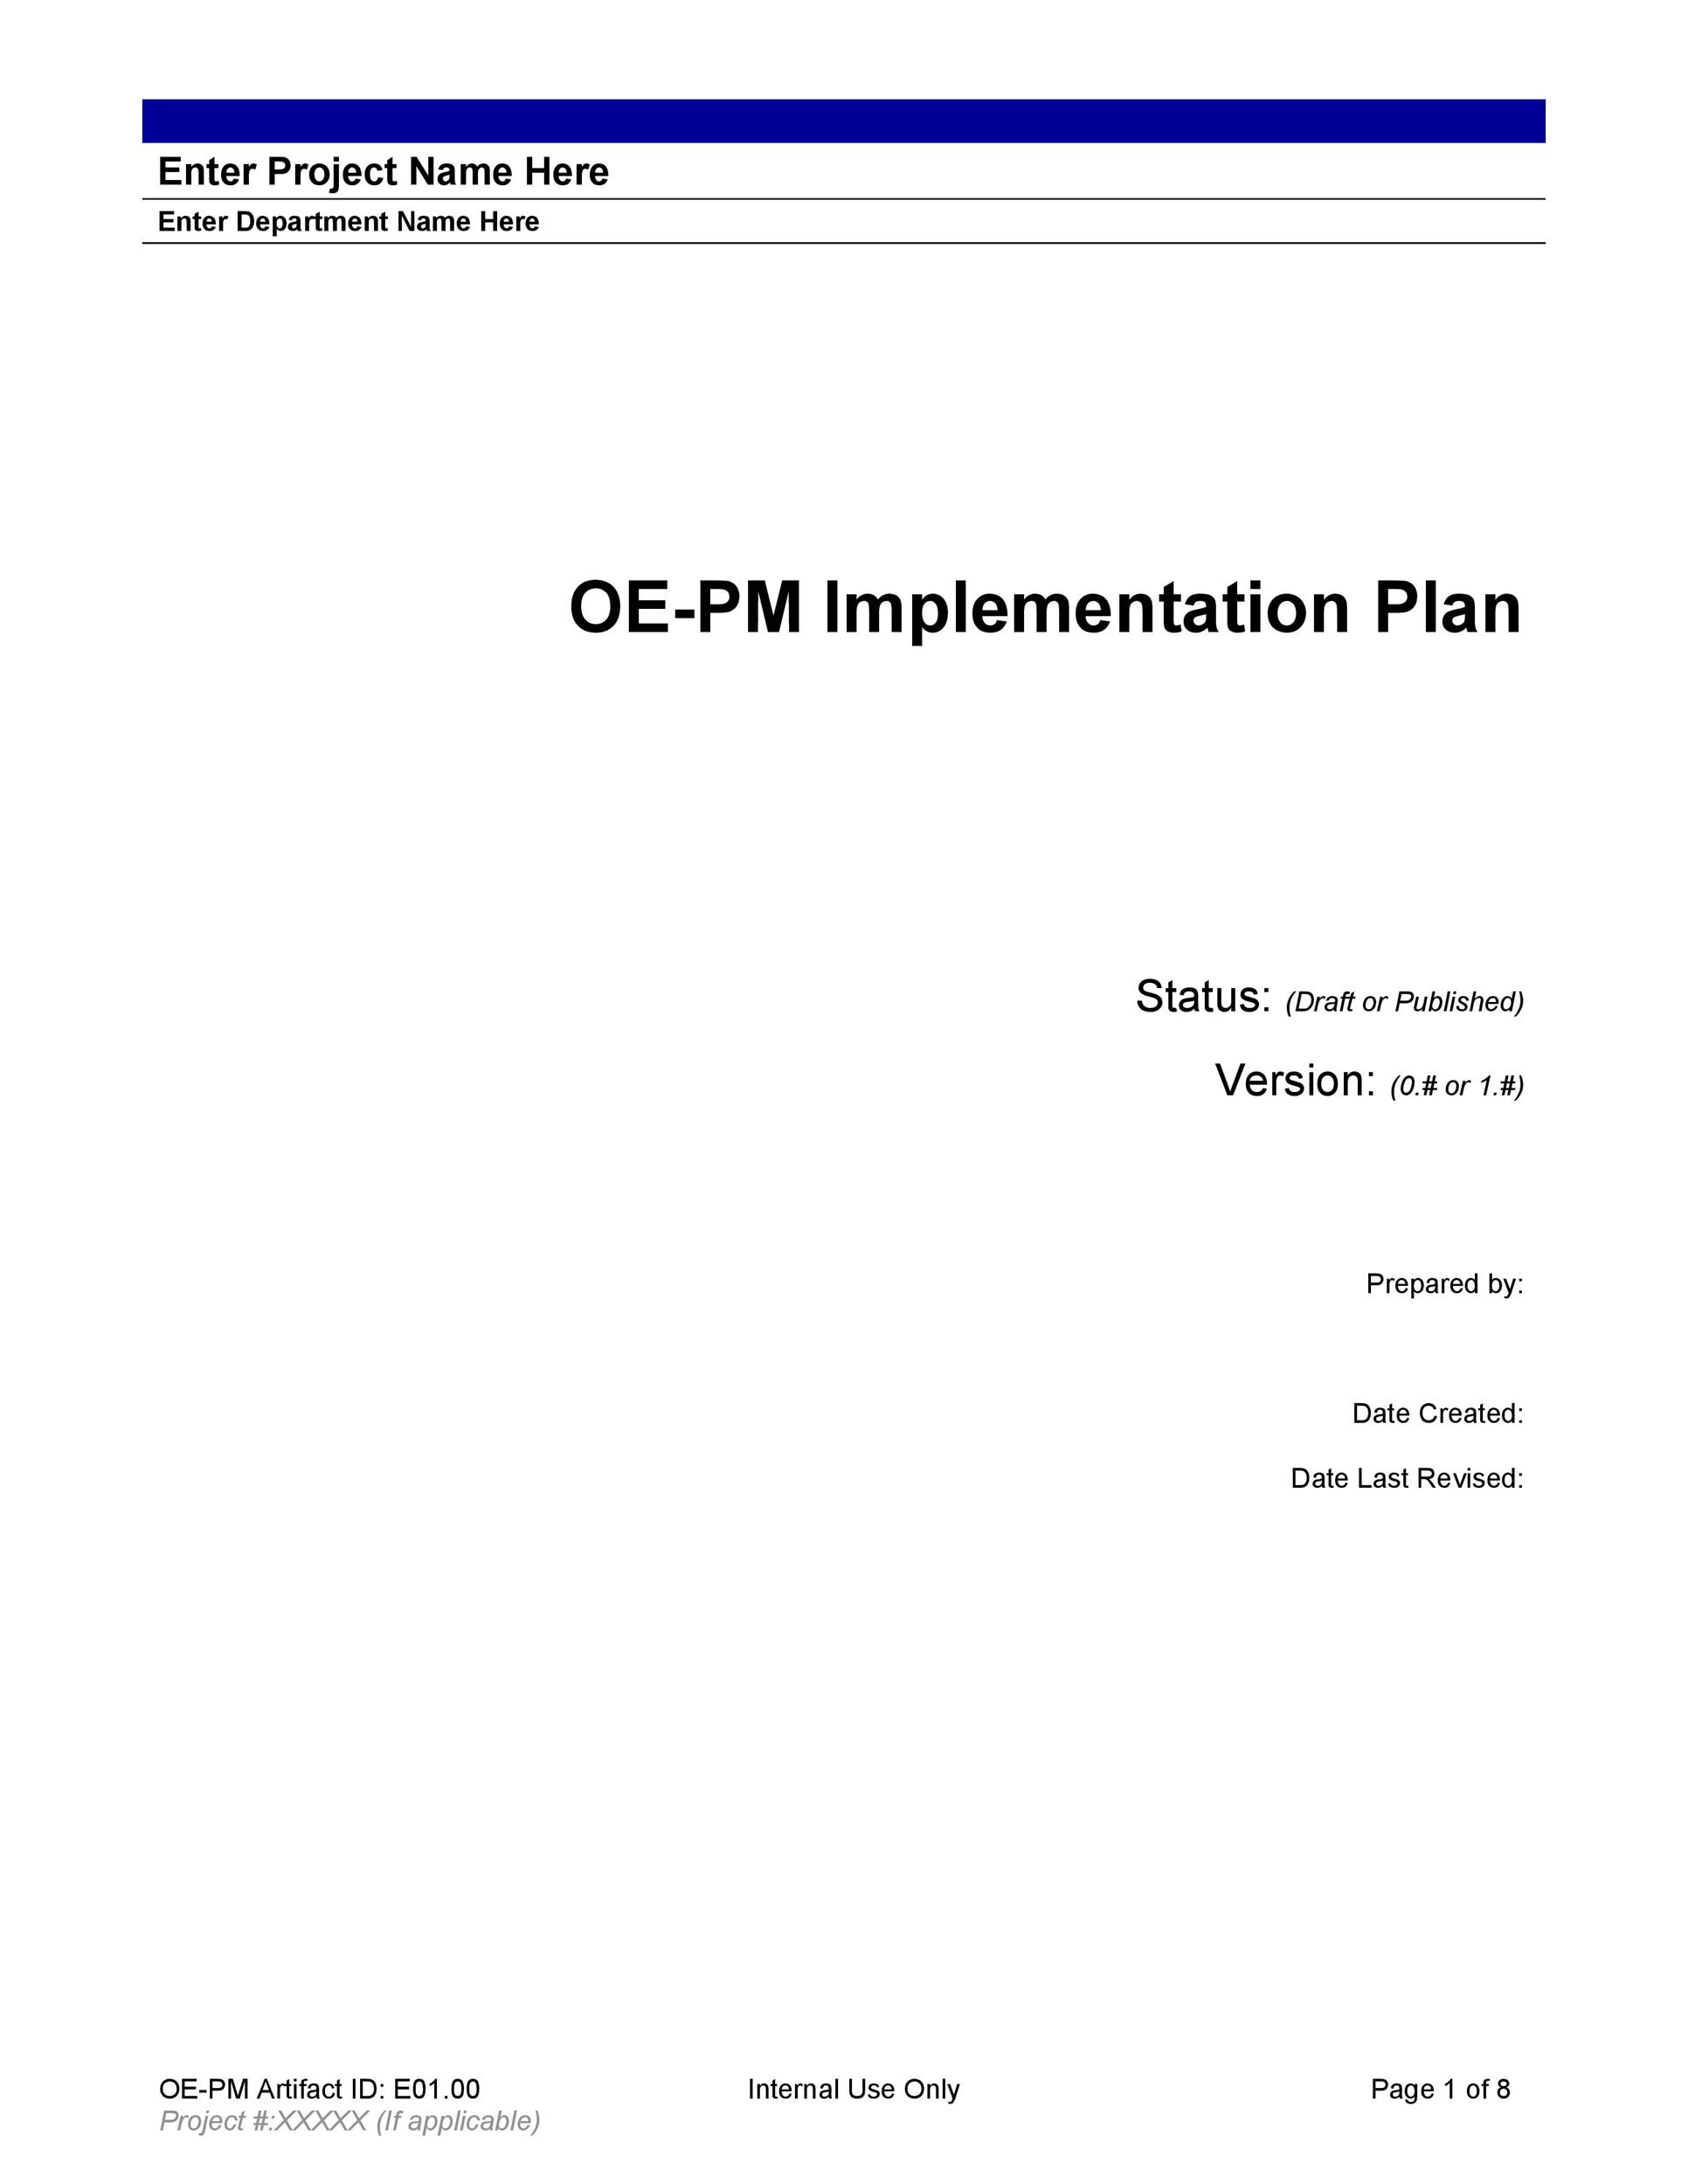 Free implementation plan 19